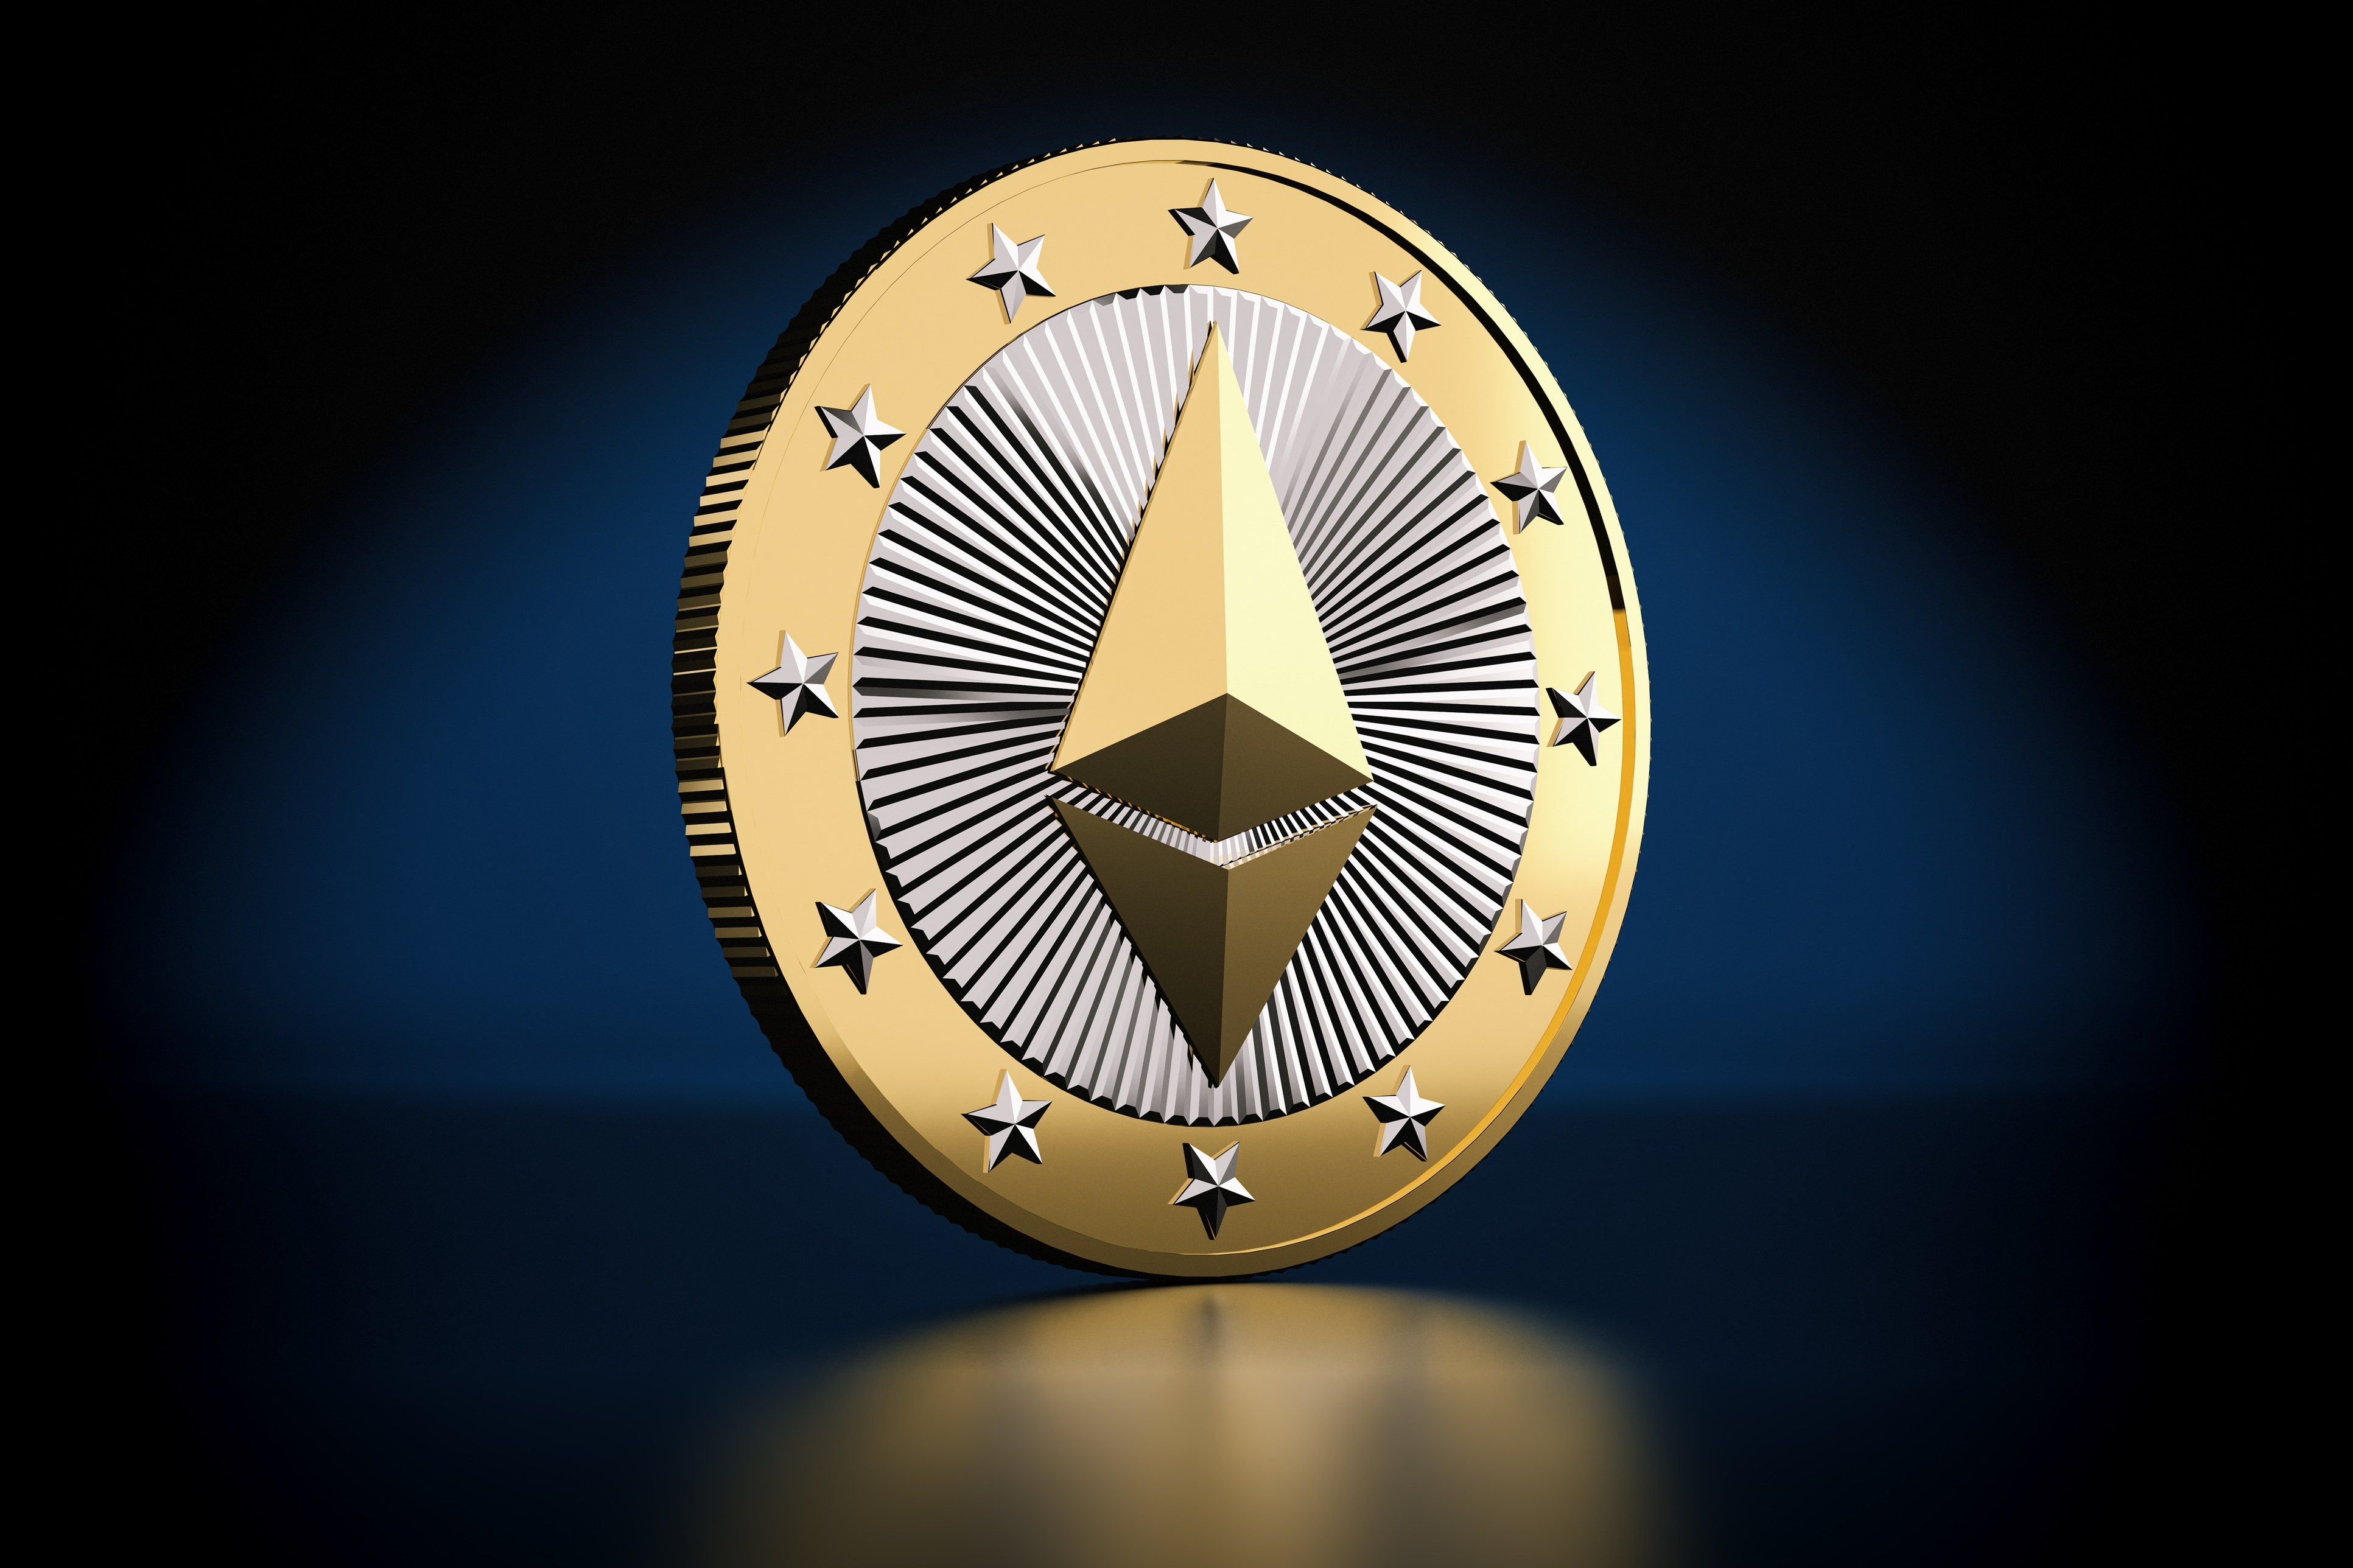 E9: Ethereum going to $90?